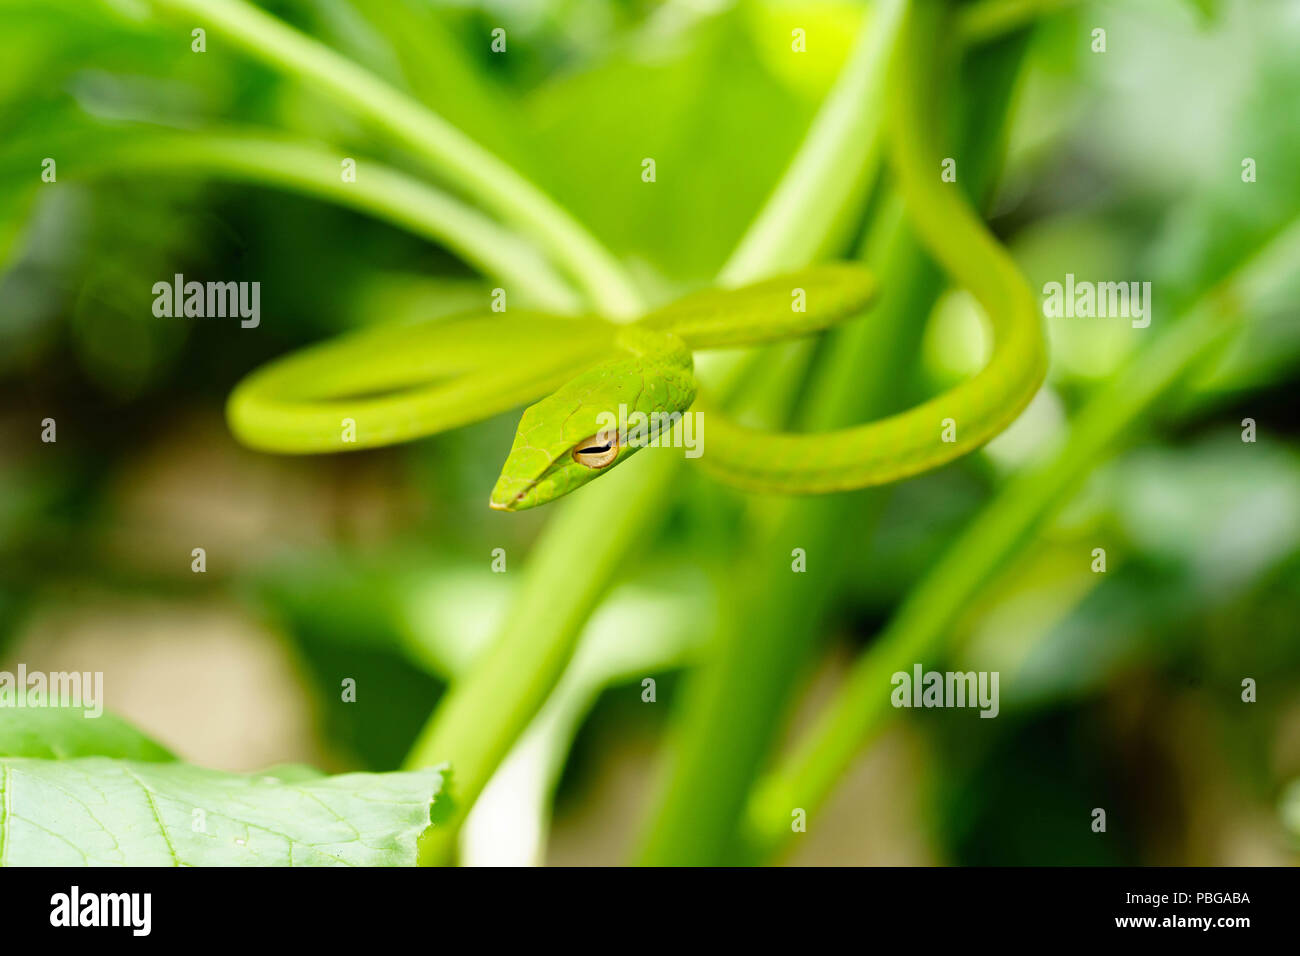 Oxybelis fulgidus also known as green vine snake camouflaging on bush - Stock Image